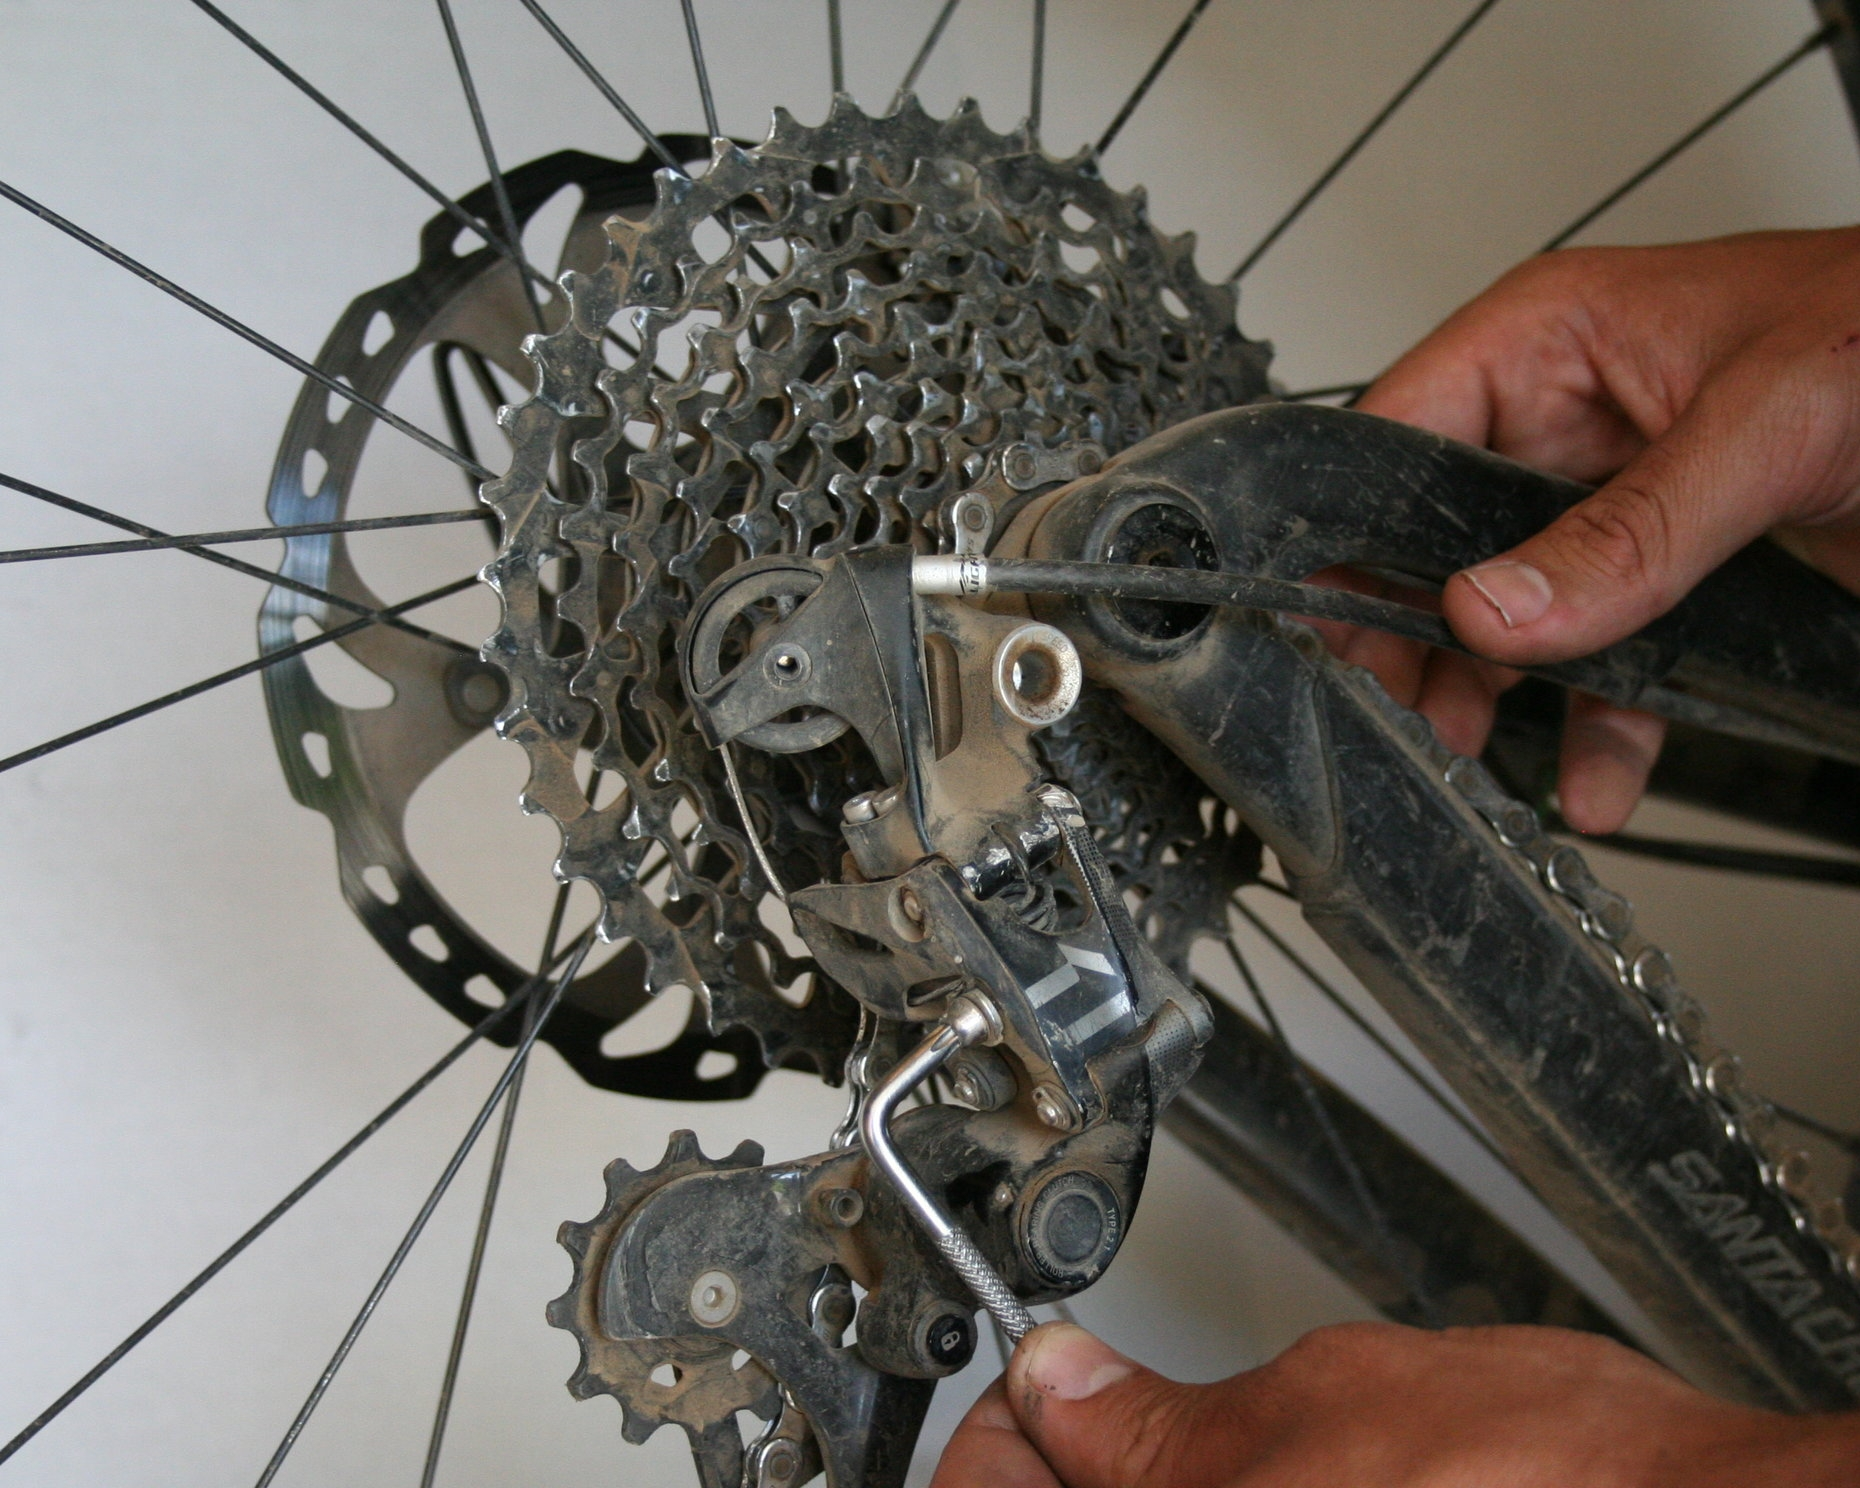 9. Reattach cable to derailleur - Grab the end of the inner wire where it comes out the back by the derailleur and pull on it to make sure all the slack is out, and then reattach the cable to the derailleur.